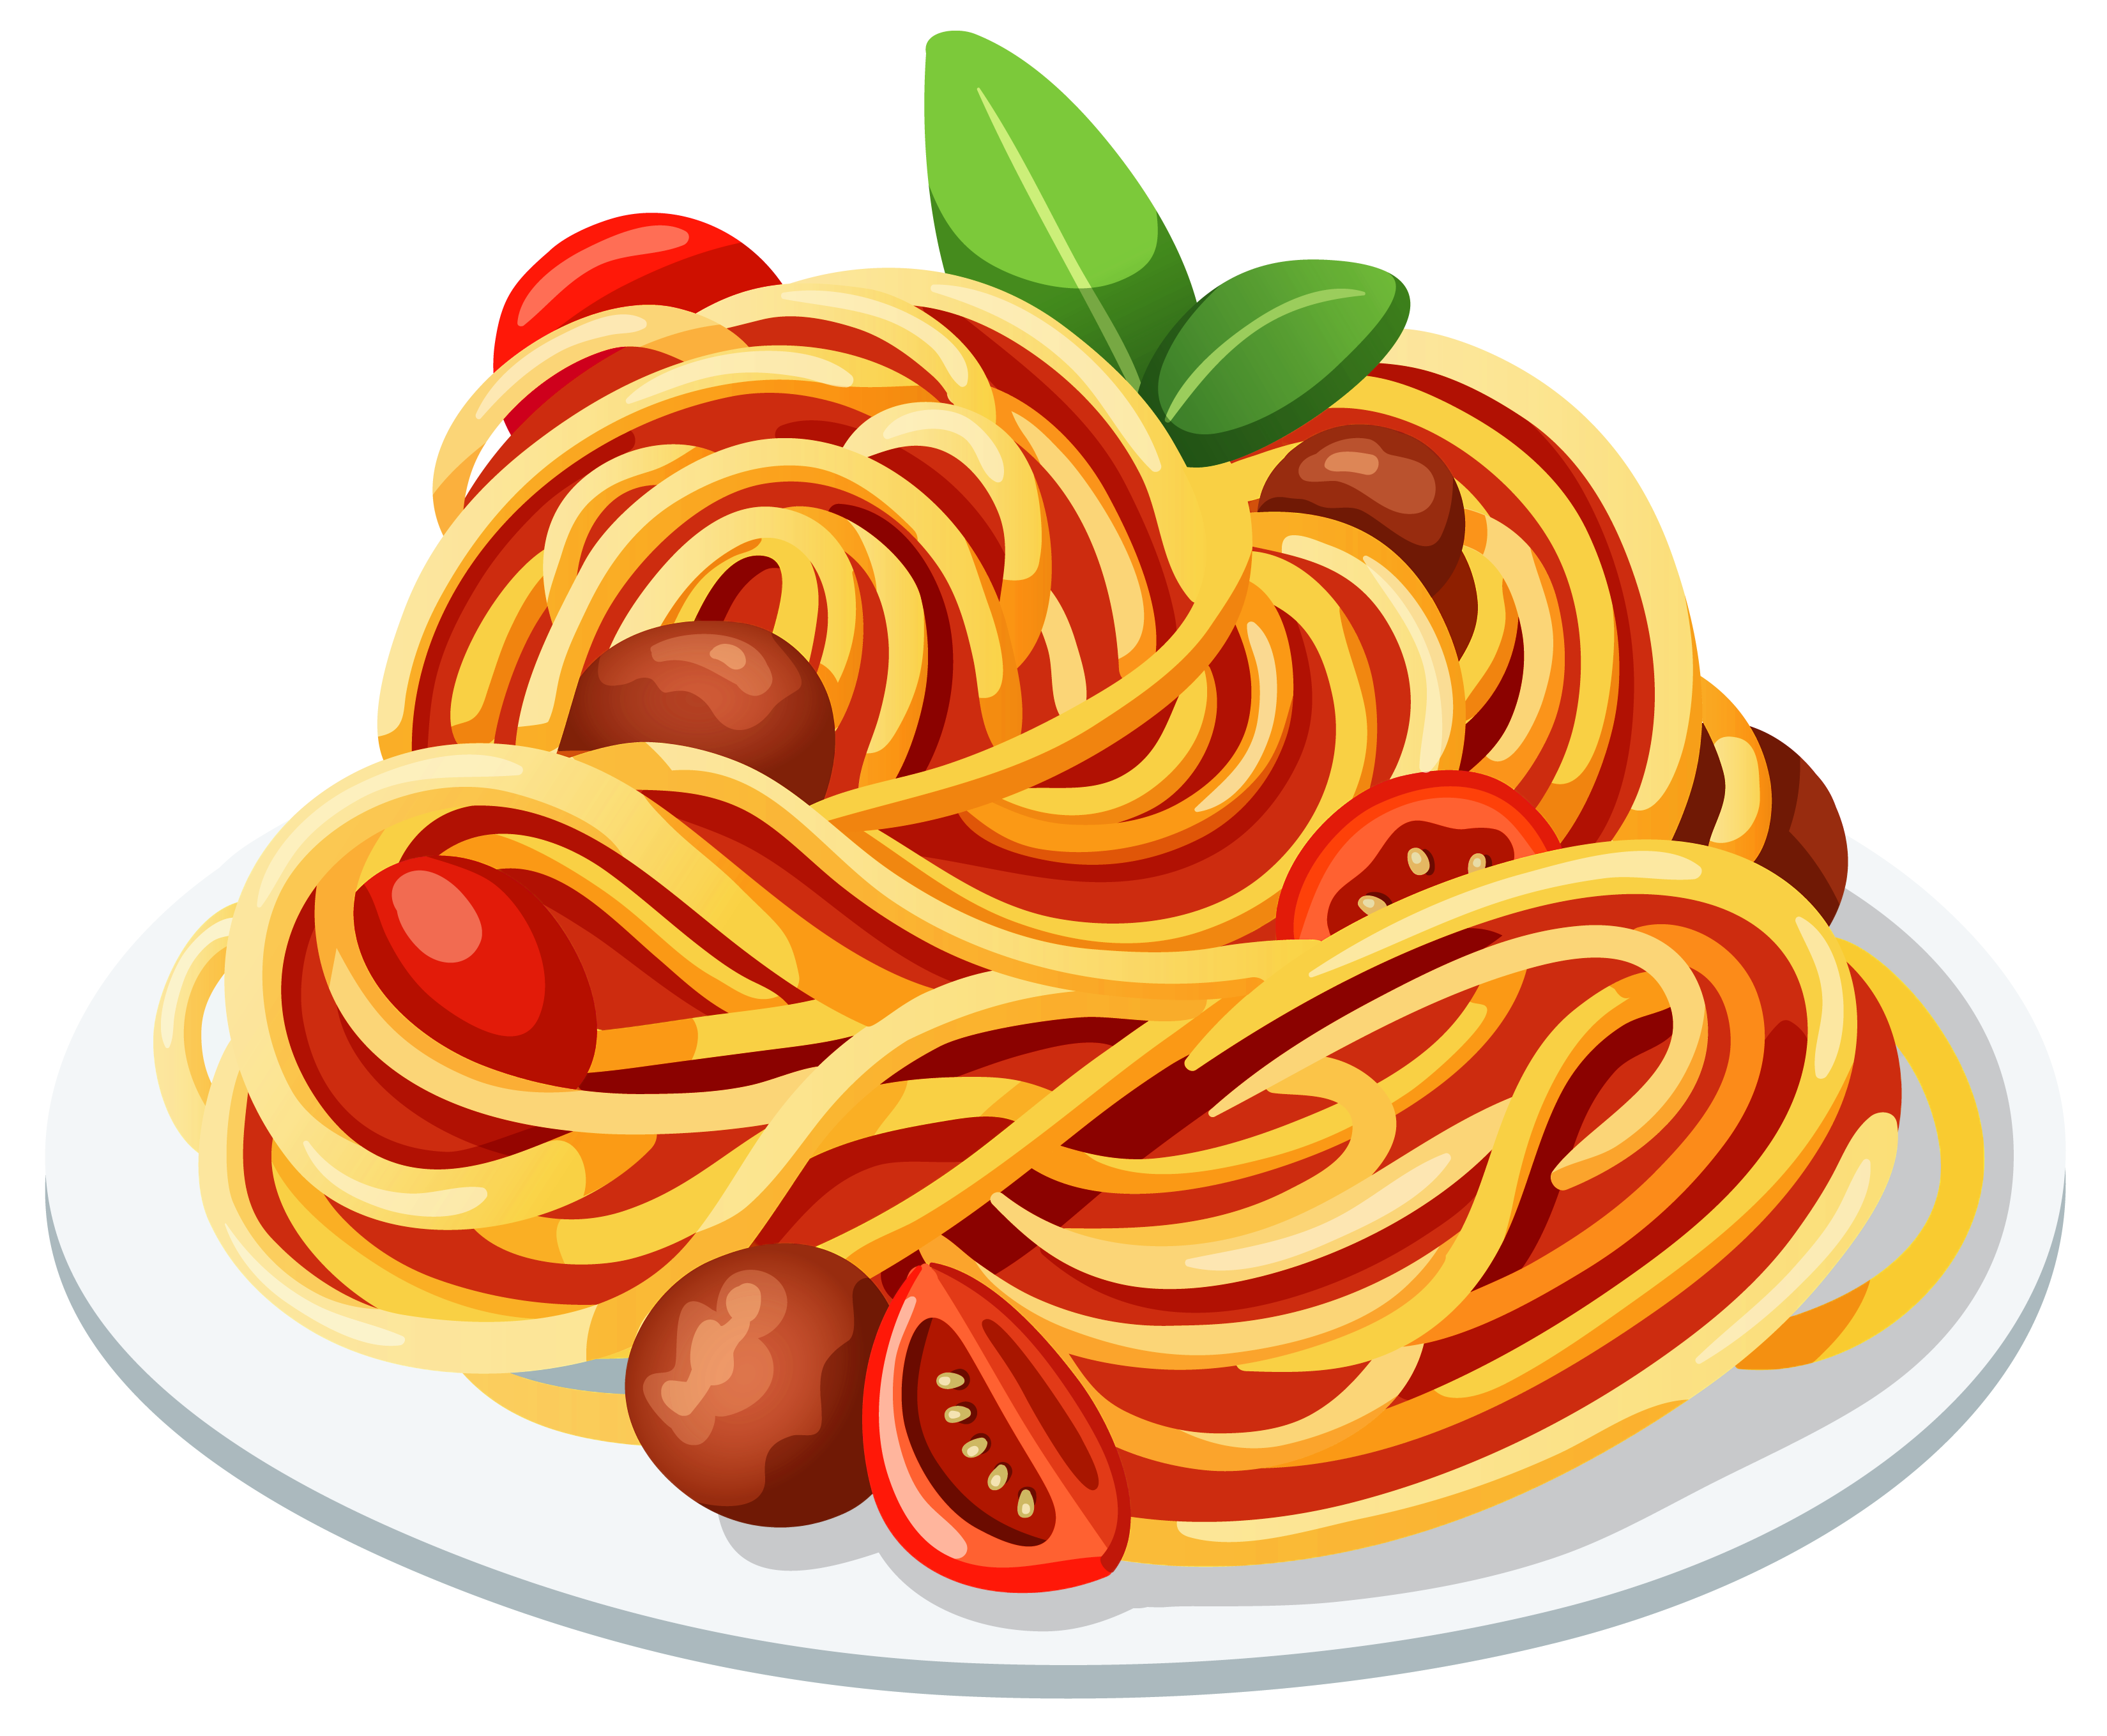 pasta transparent red